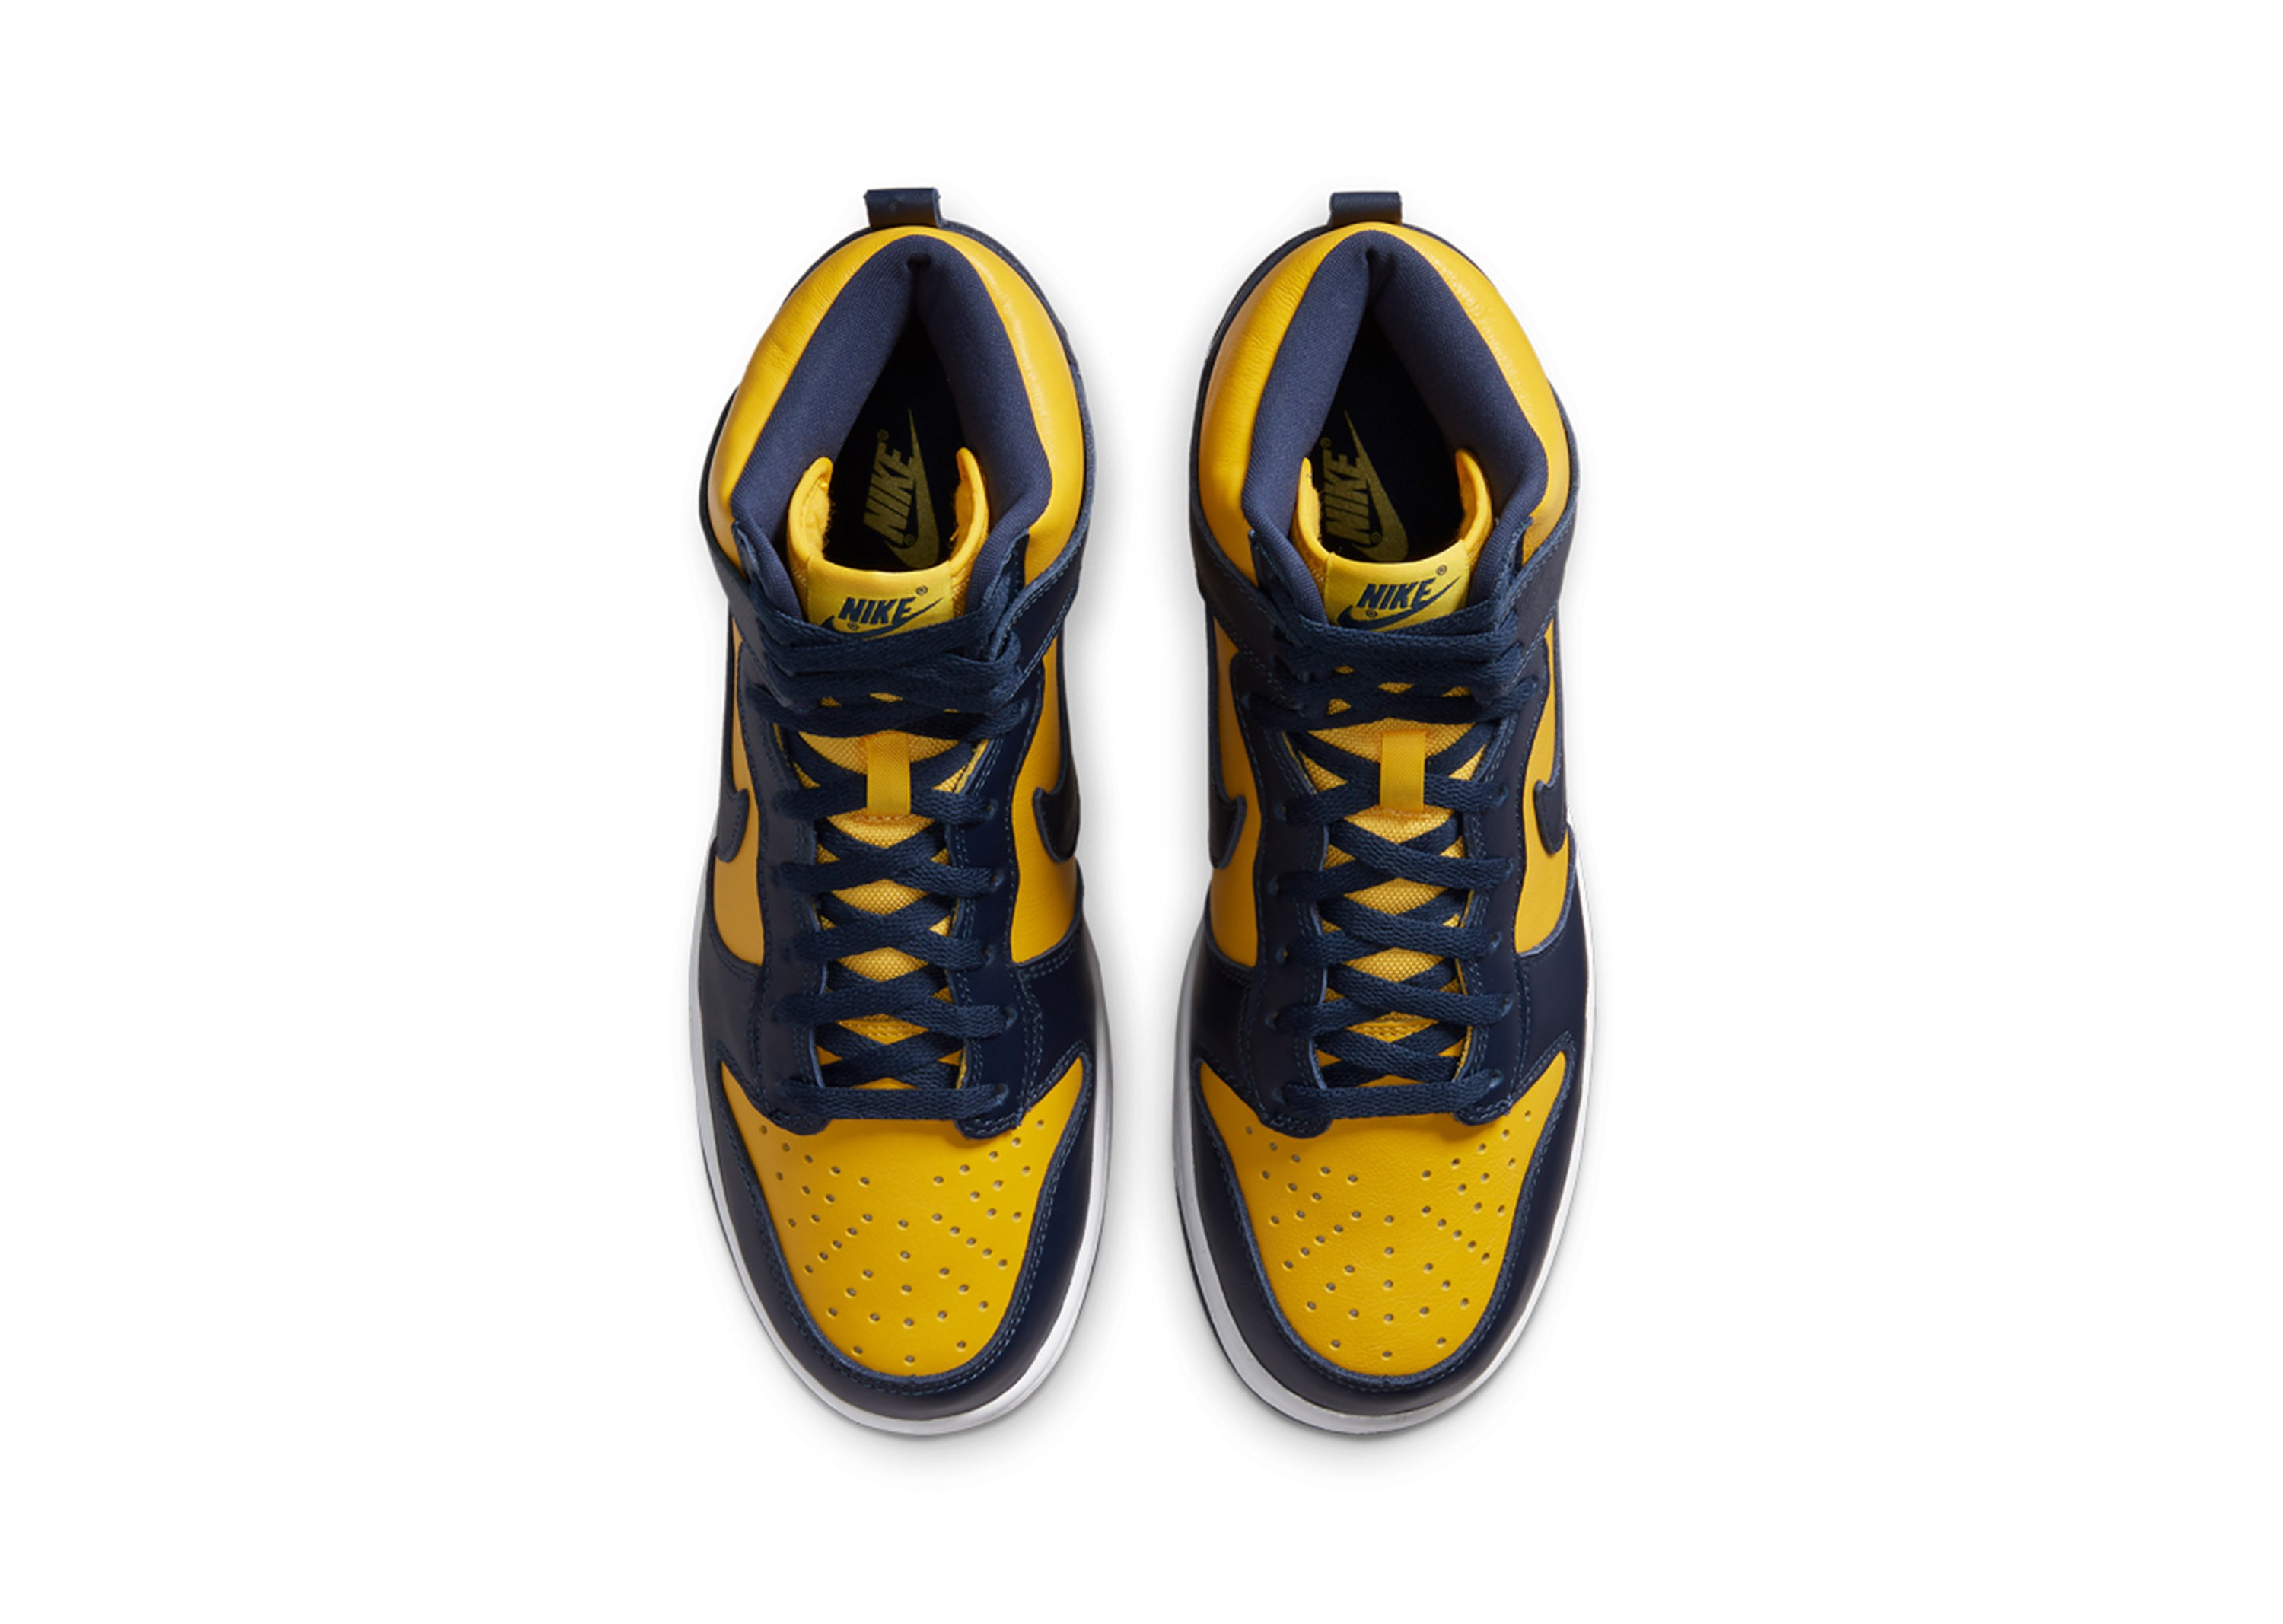 Nike_Dunk_High_Michigan_Navy_Maize_0003_nike-dunk-high-michigan-cz8149-700-official-release-date-info-4